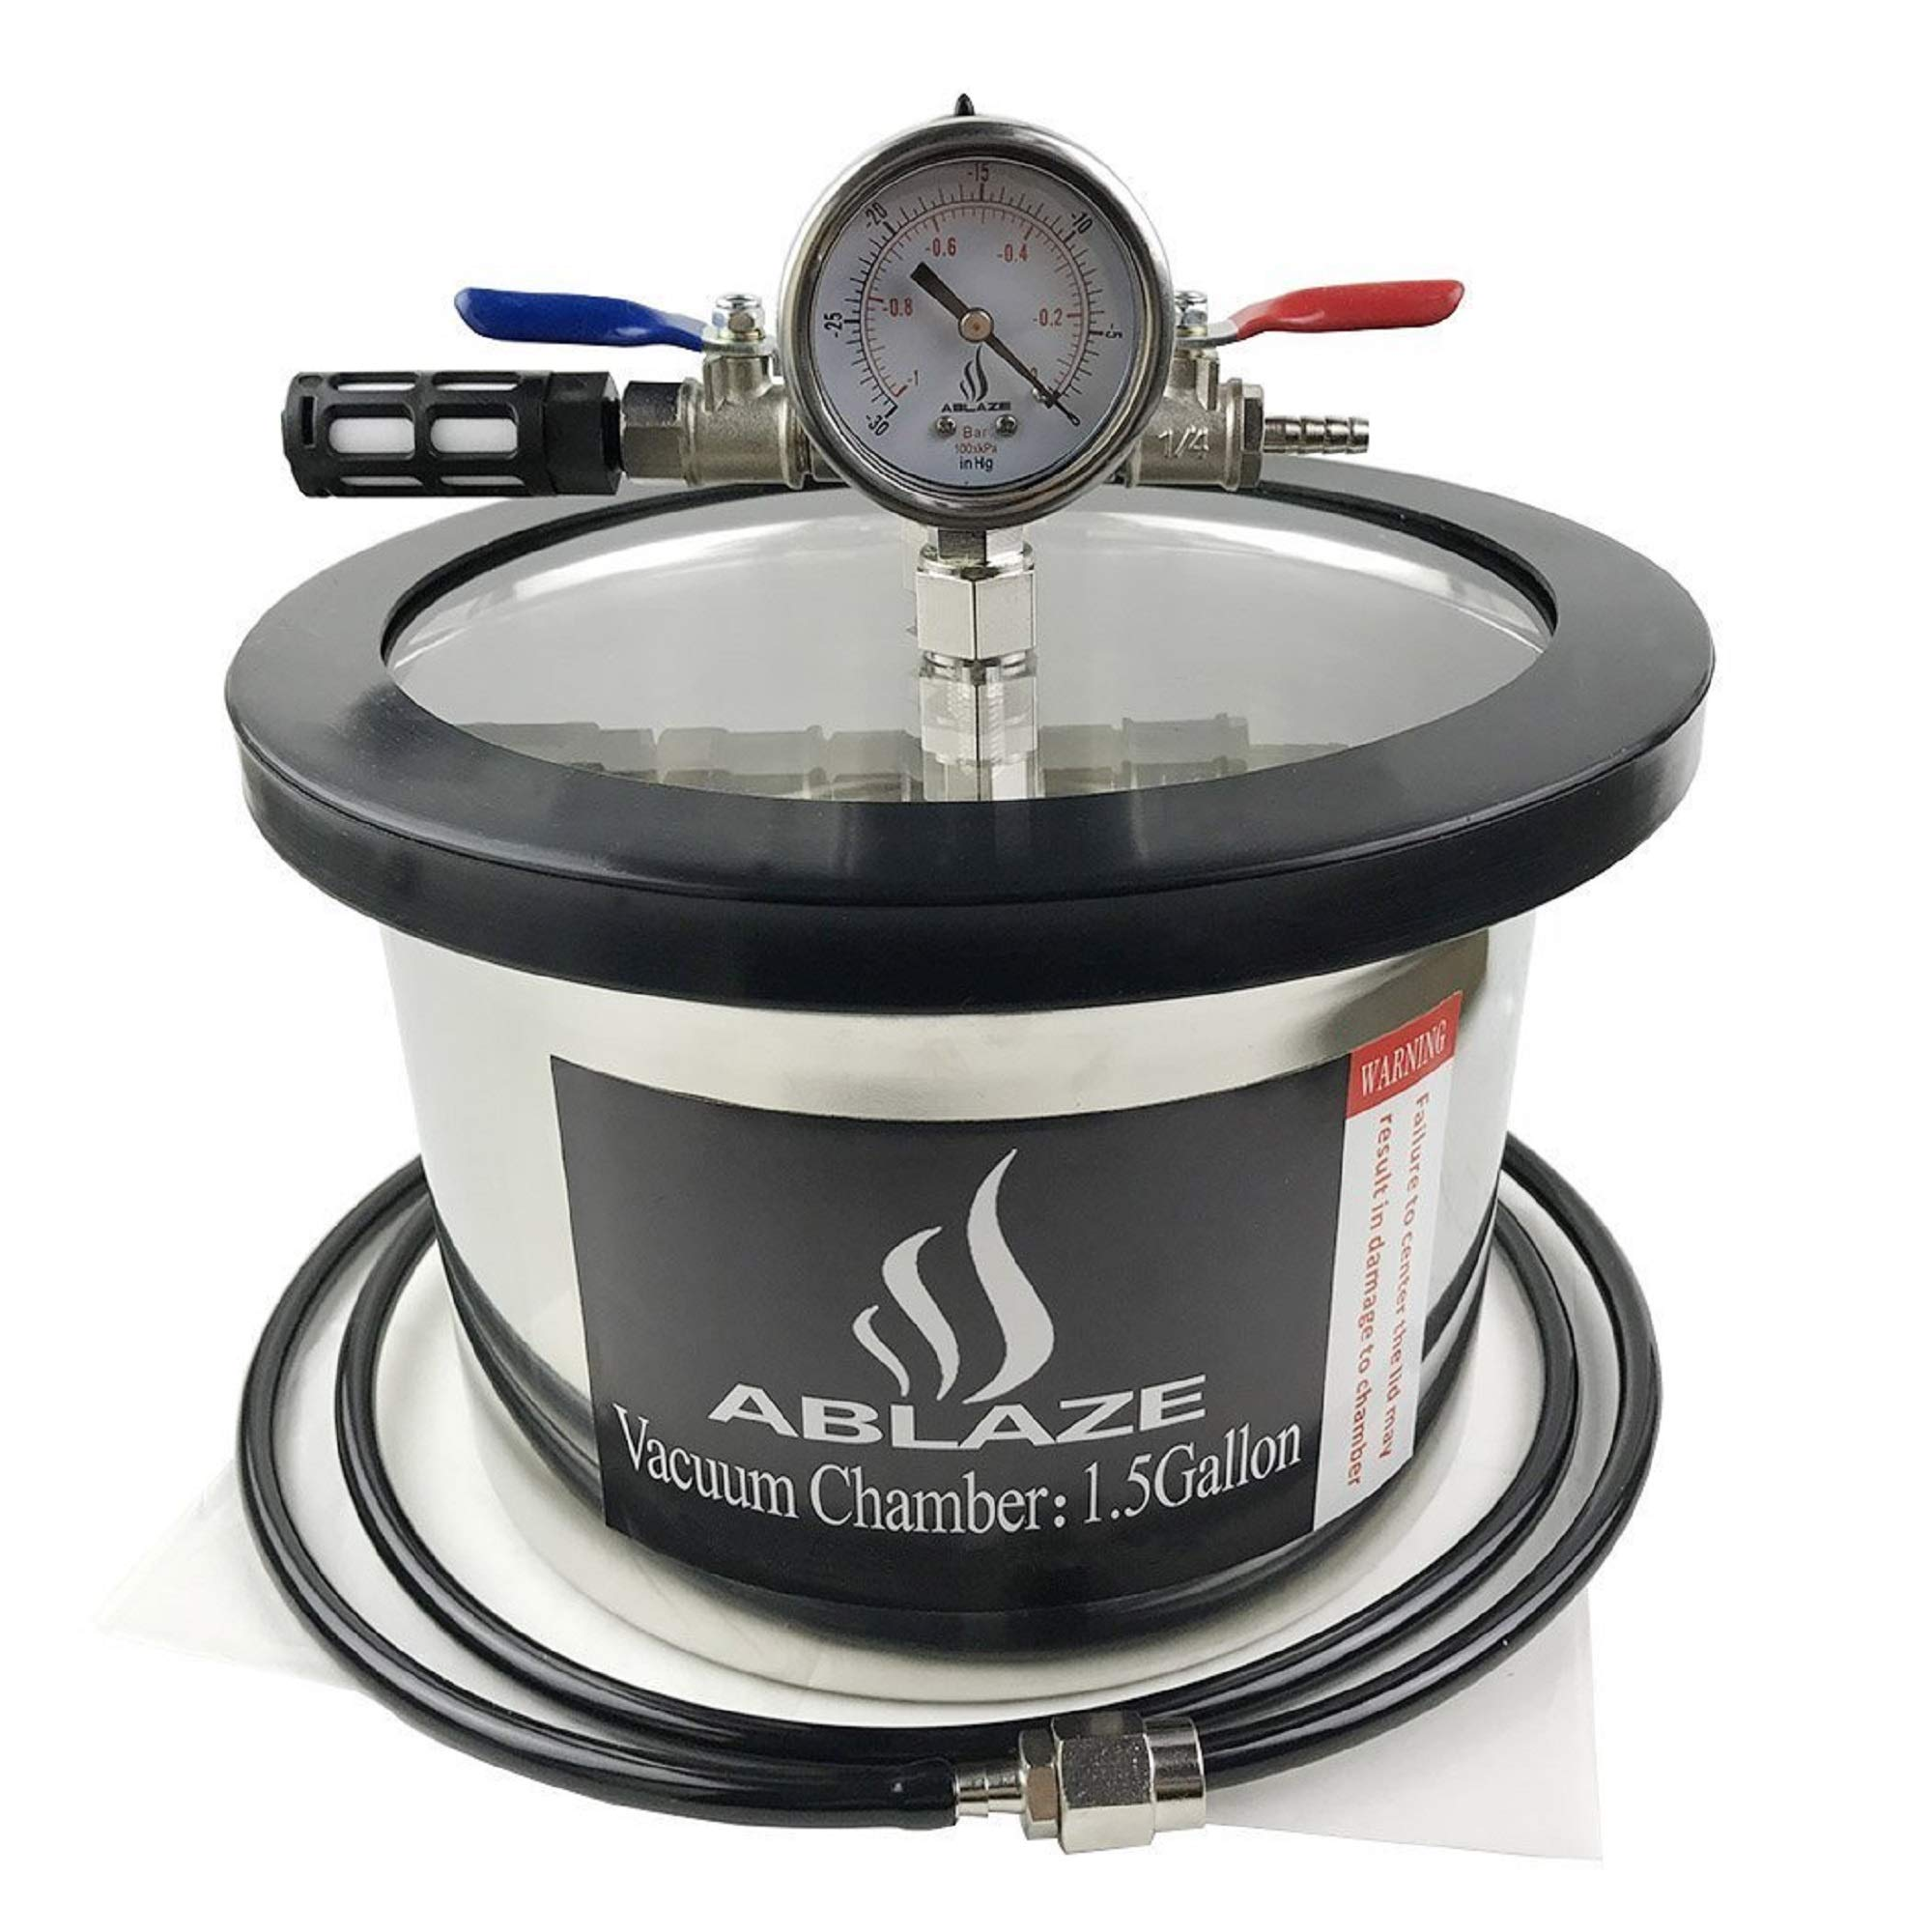 ABLAZE 1.5 Gallon Stainless Steel Vacuum Degassing Chamber and 3 CFM Single Stage Pump Kit by Ablaze (Image #2)